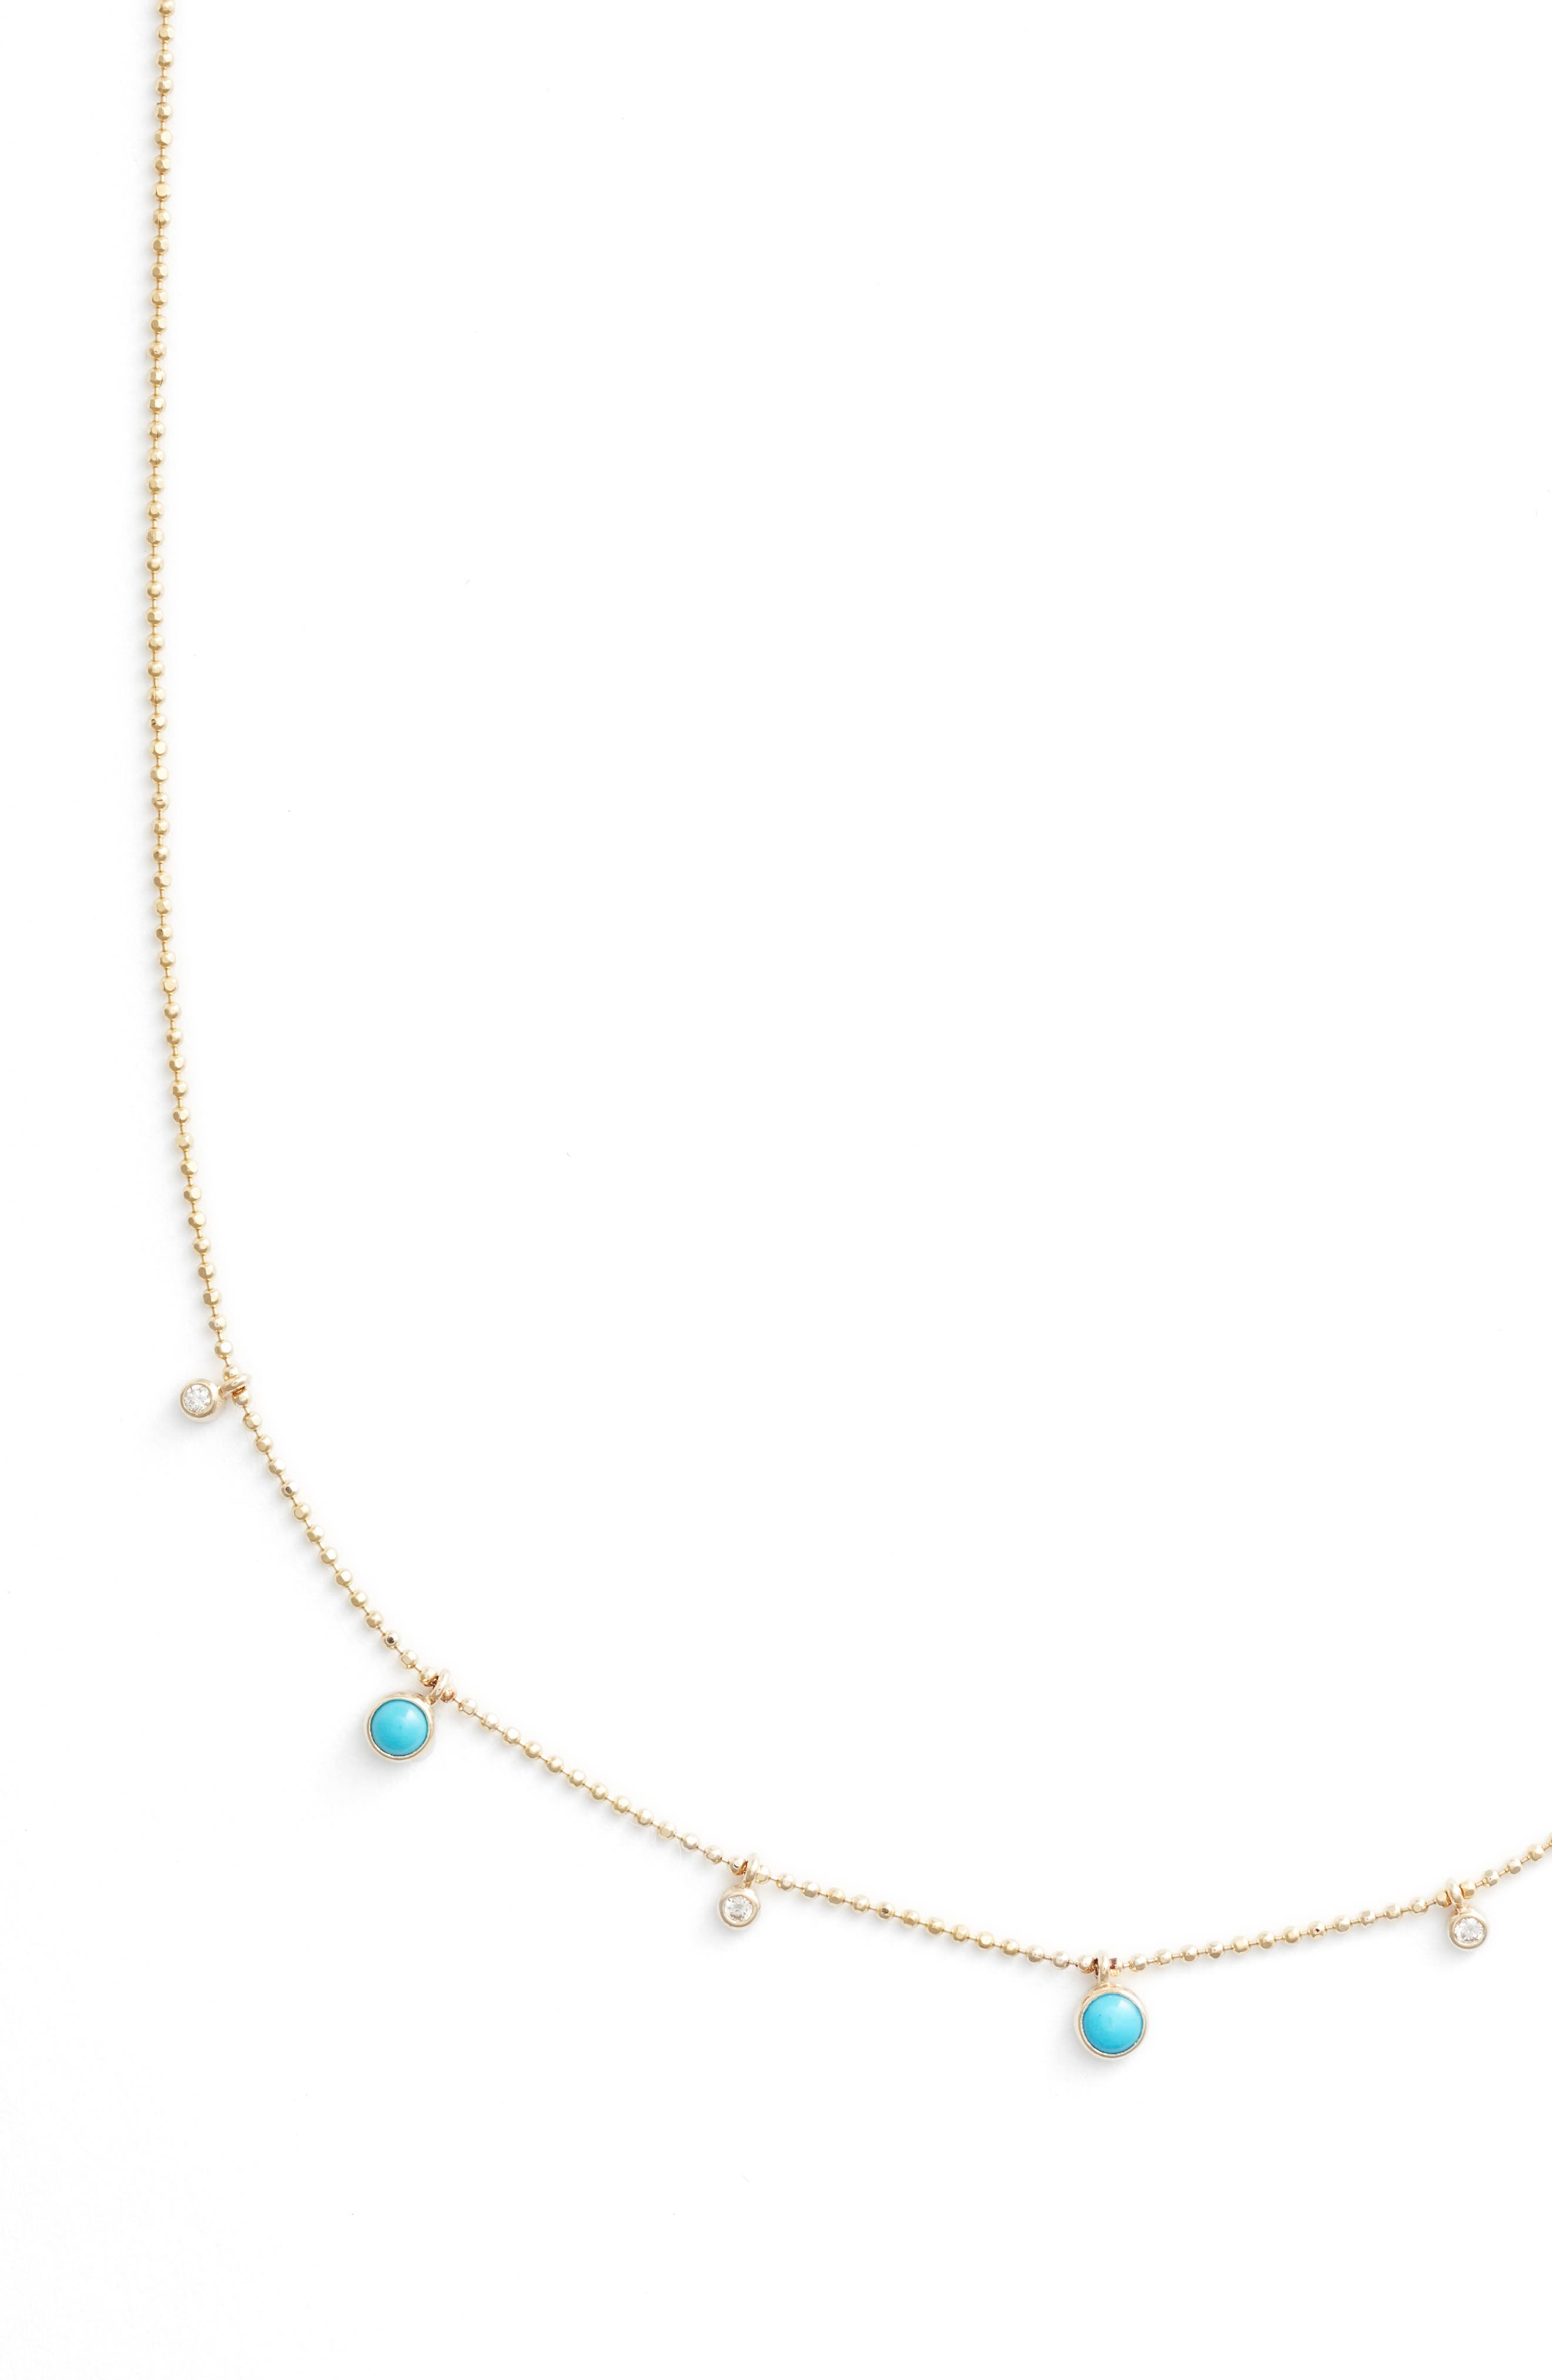 Turquoise & Diamond Station Short Necklace,                             Main thumbnail 1, color,                             YELLOW GOLD